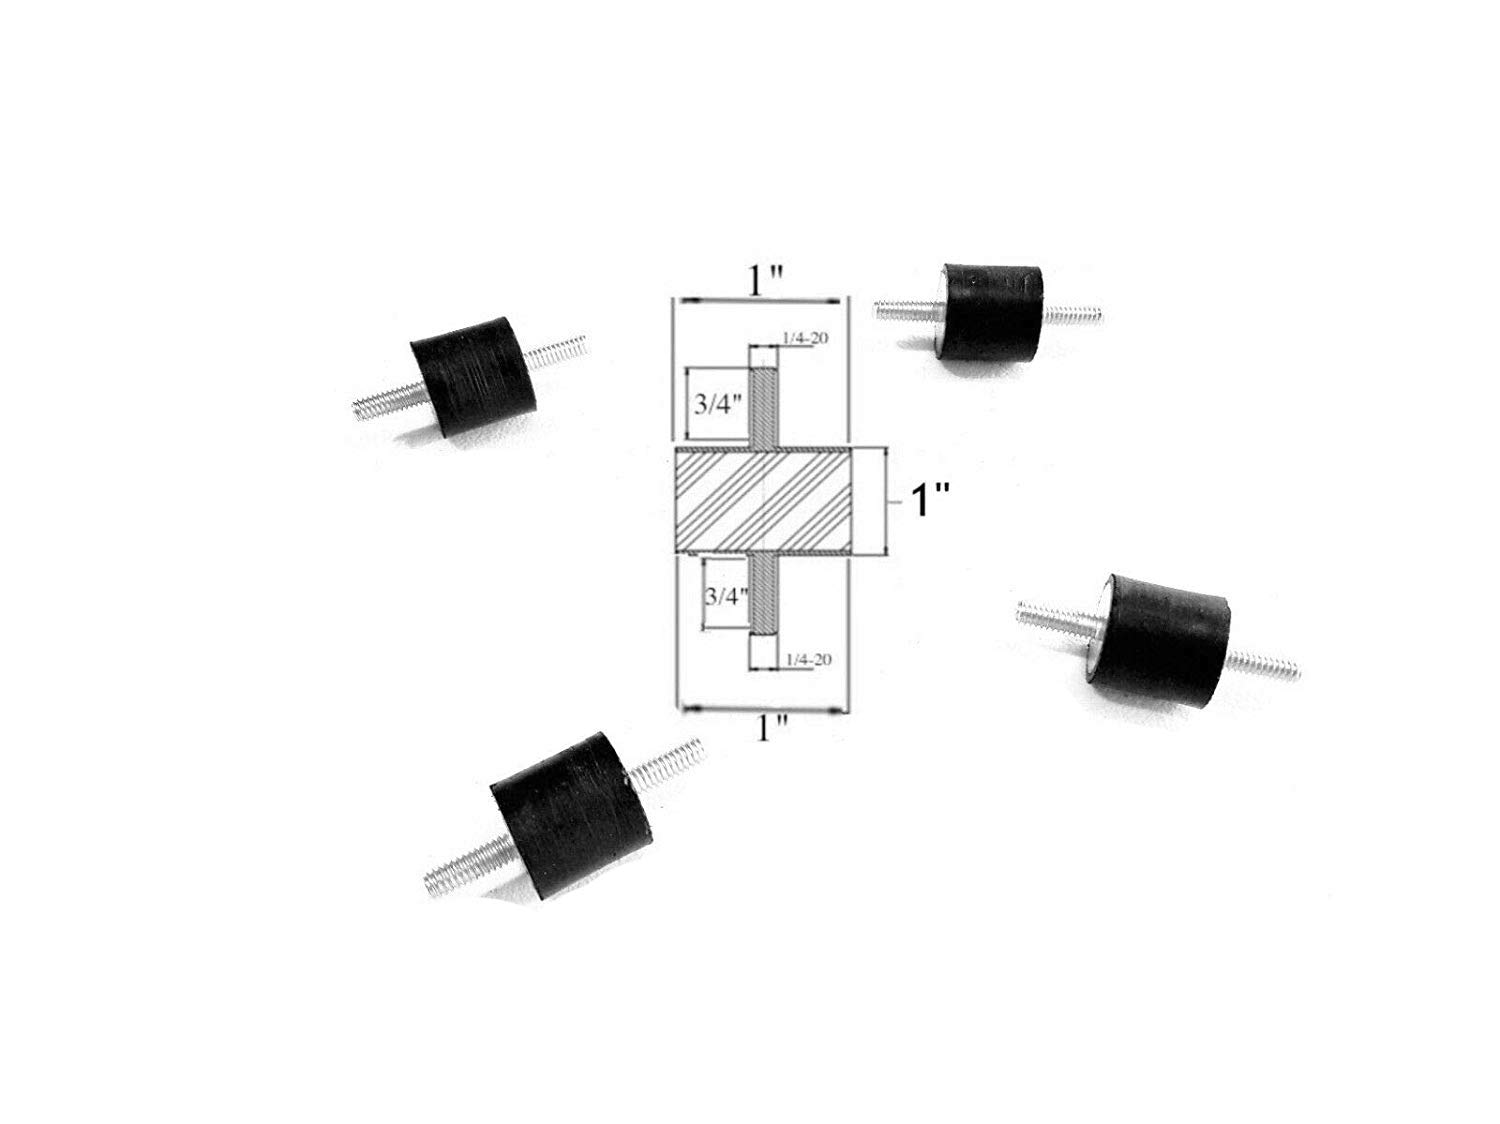 Lot of 4 Rubber Vibration Isolator/Isolation Mounts (1'' Dia x 1'' Thick) 1/4-20 x 3/4'' Long Studs